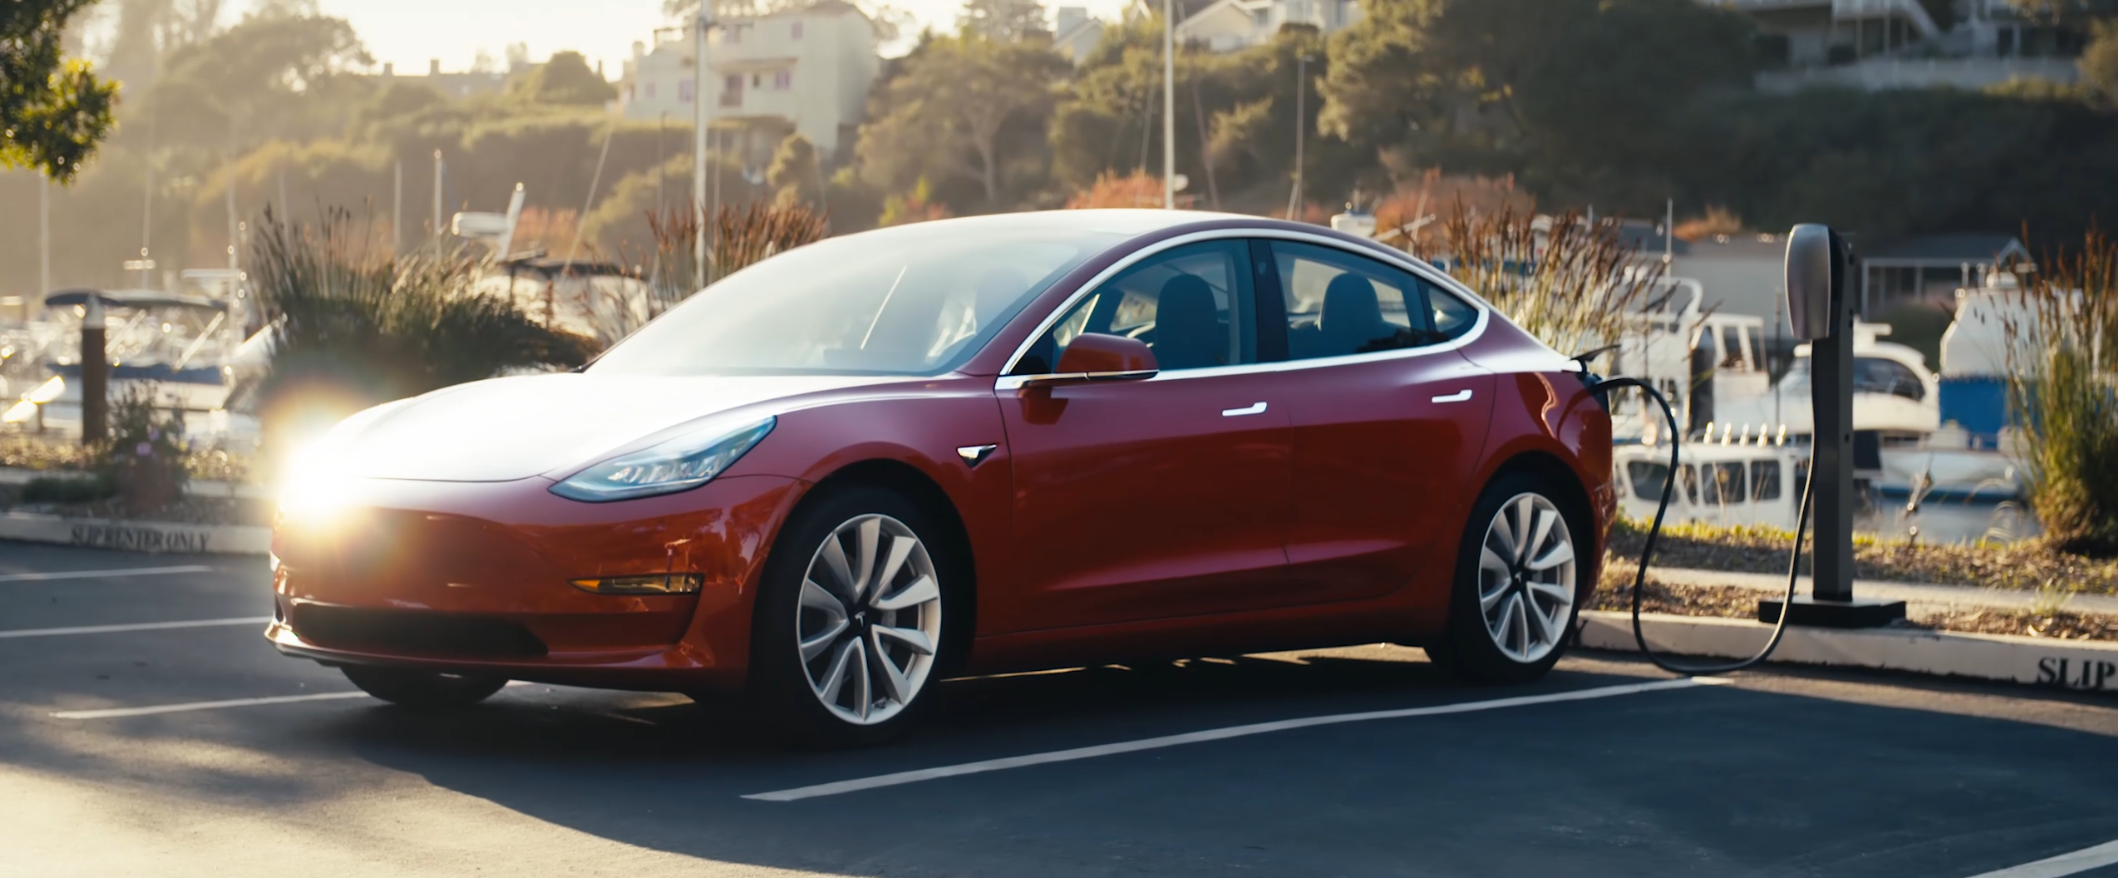 New VIN Registrations Reveal That The RHD Tesla Model 3 Is Coming